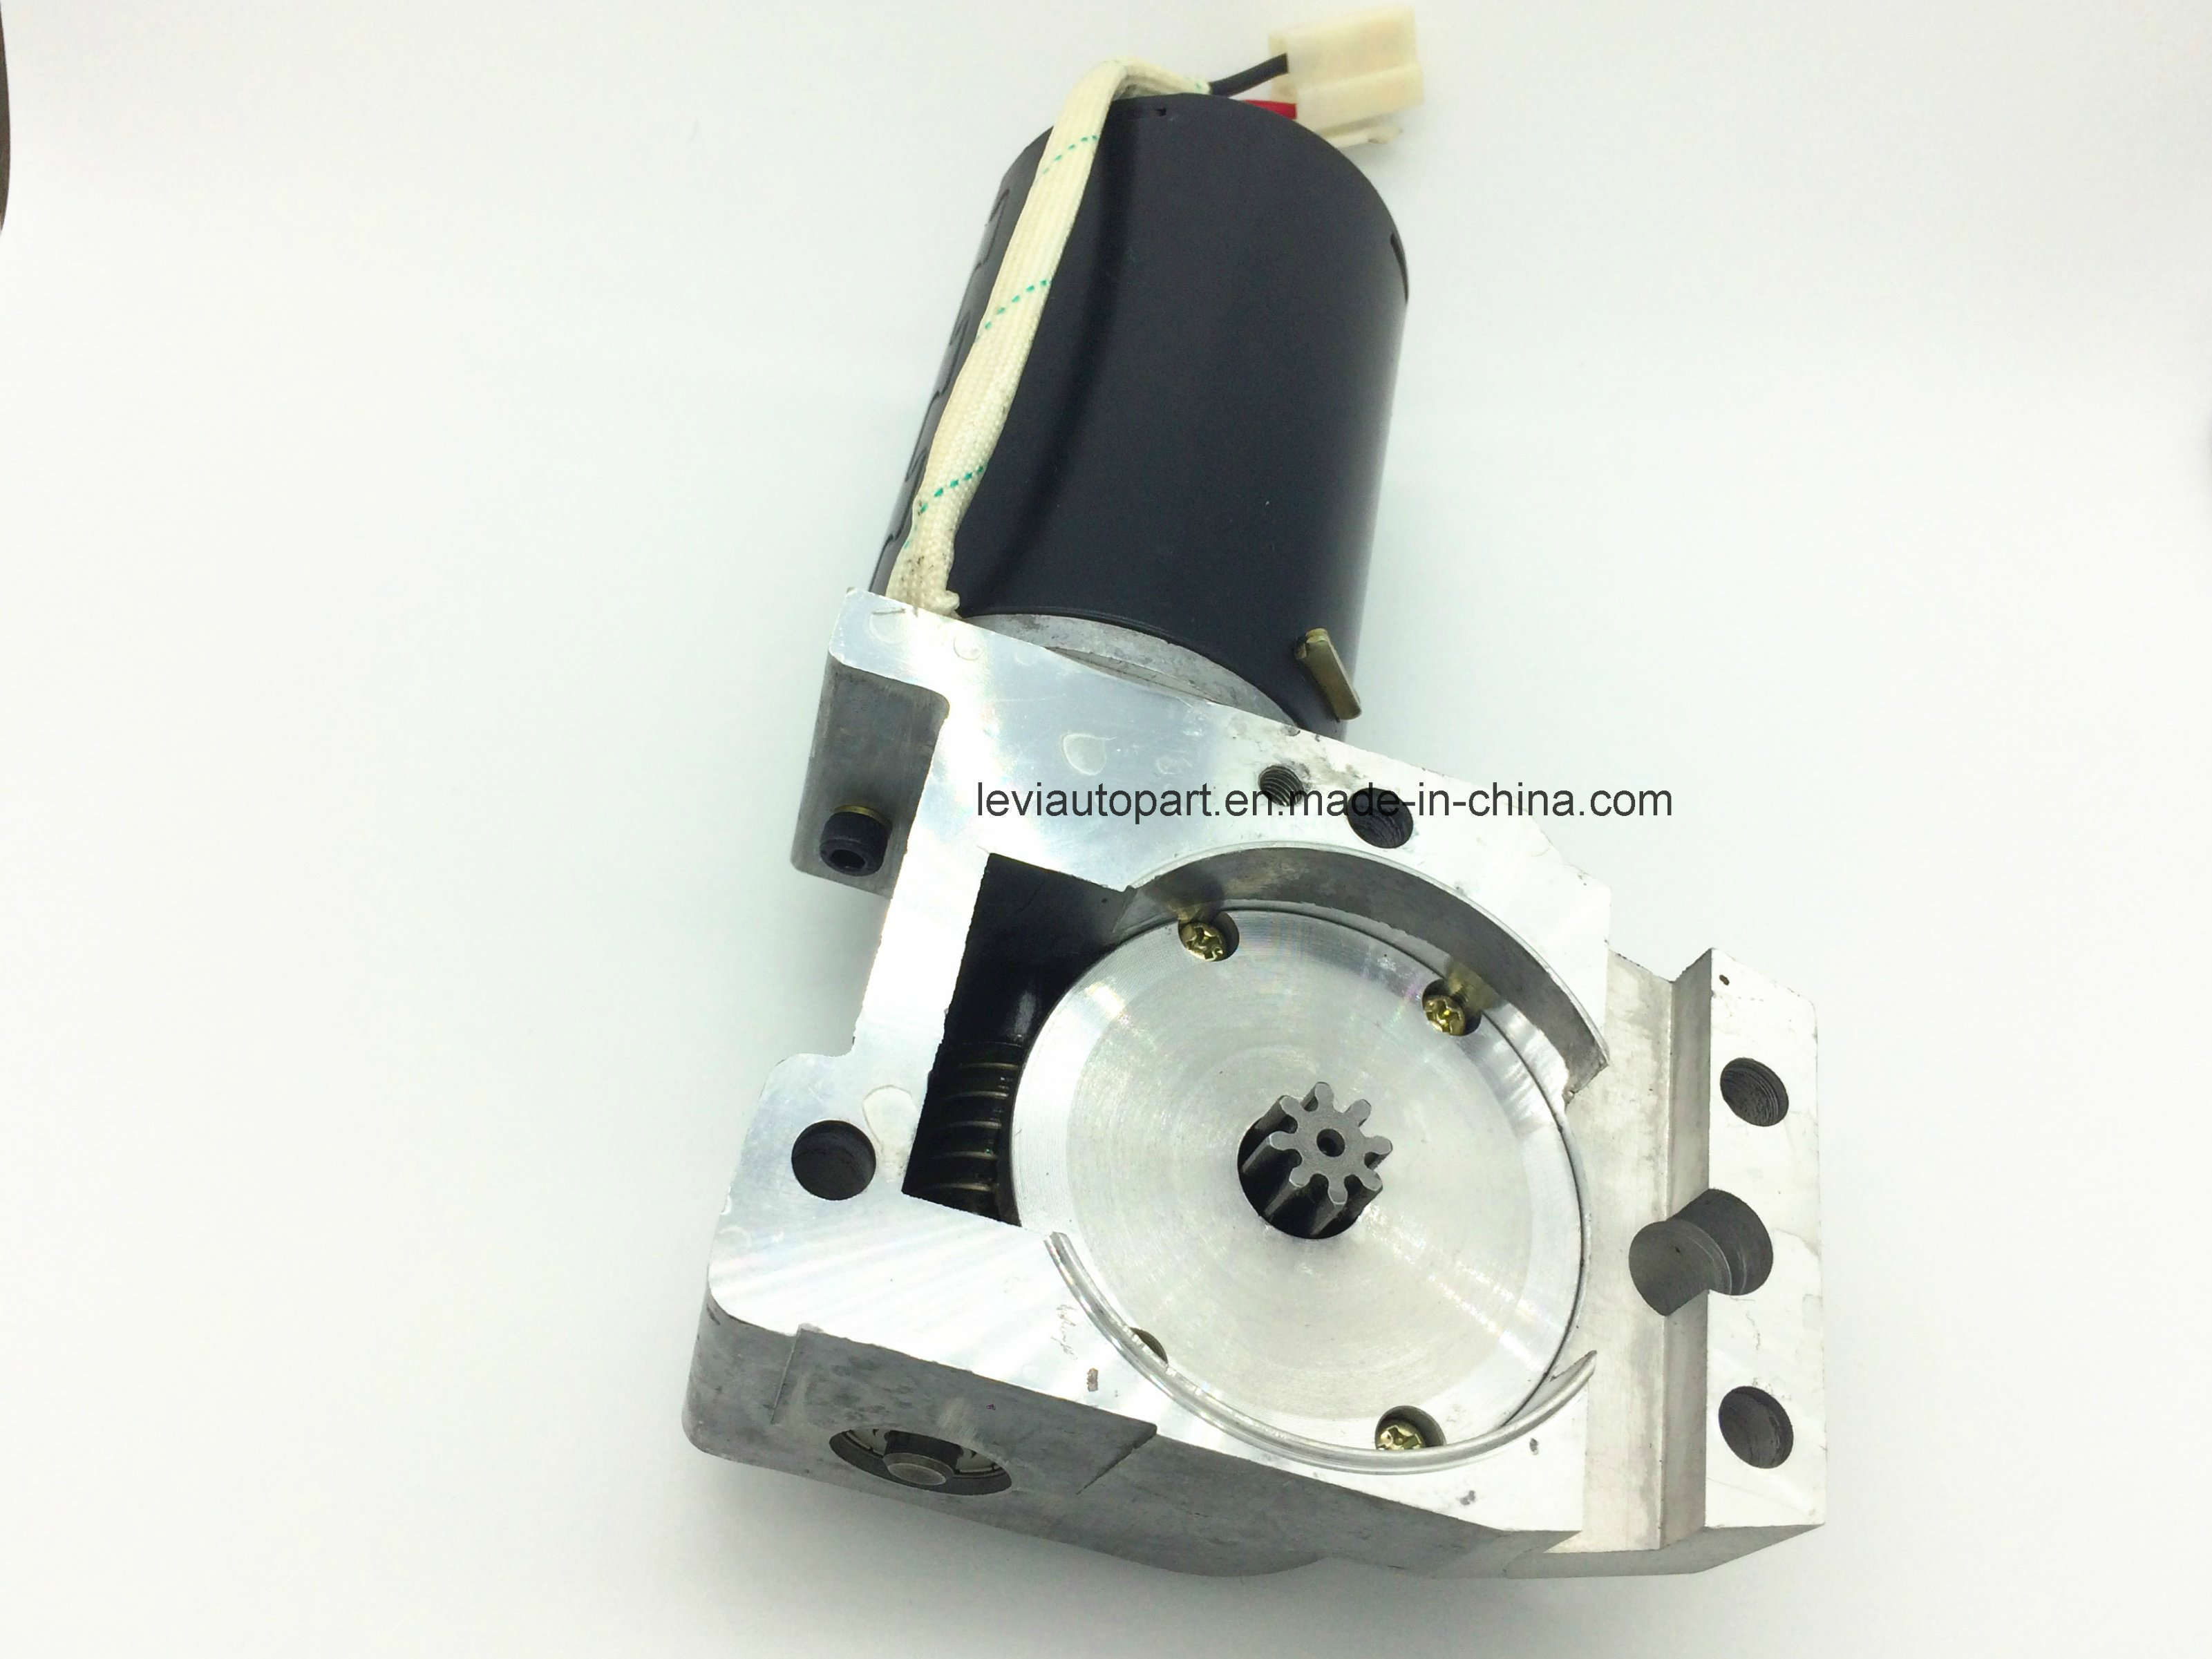 Passenger Car Door Pump Motor